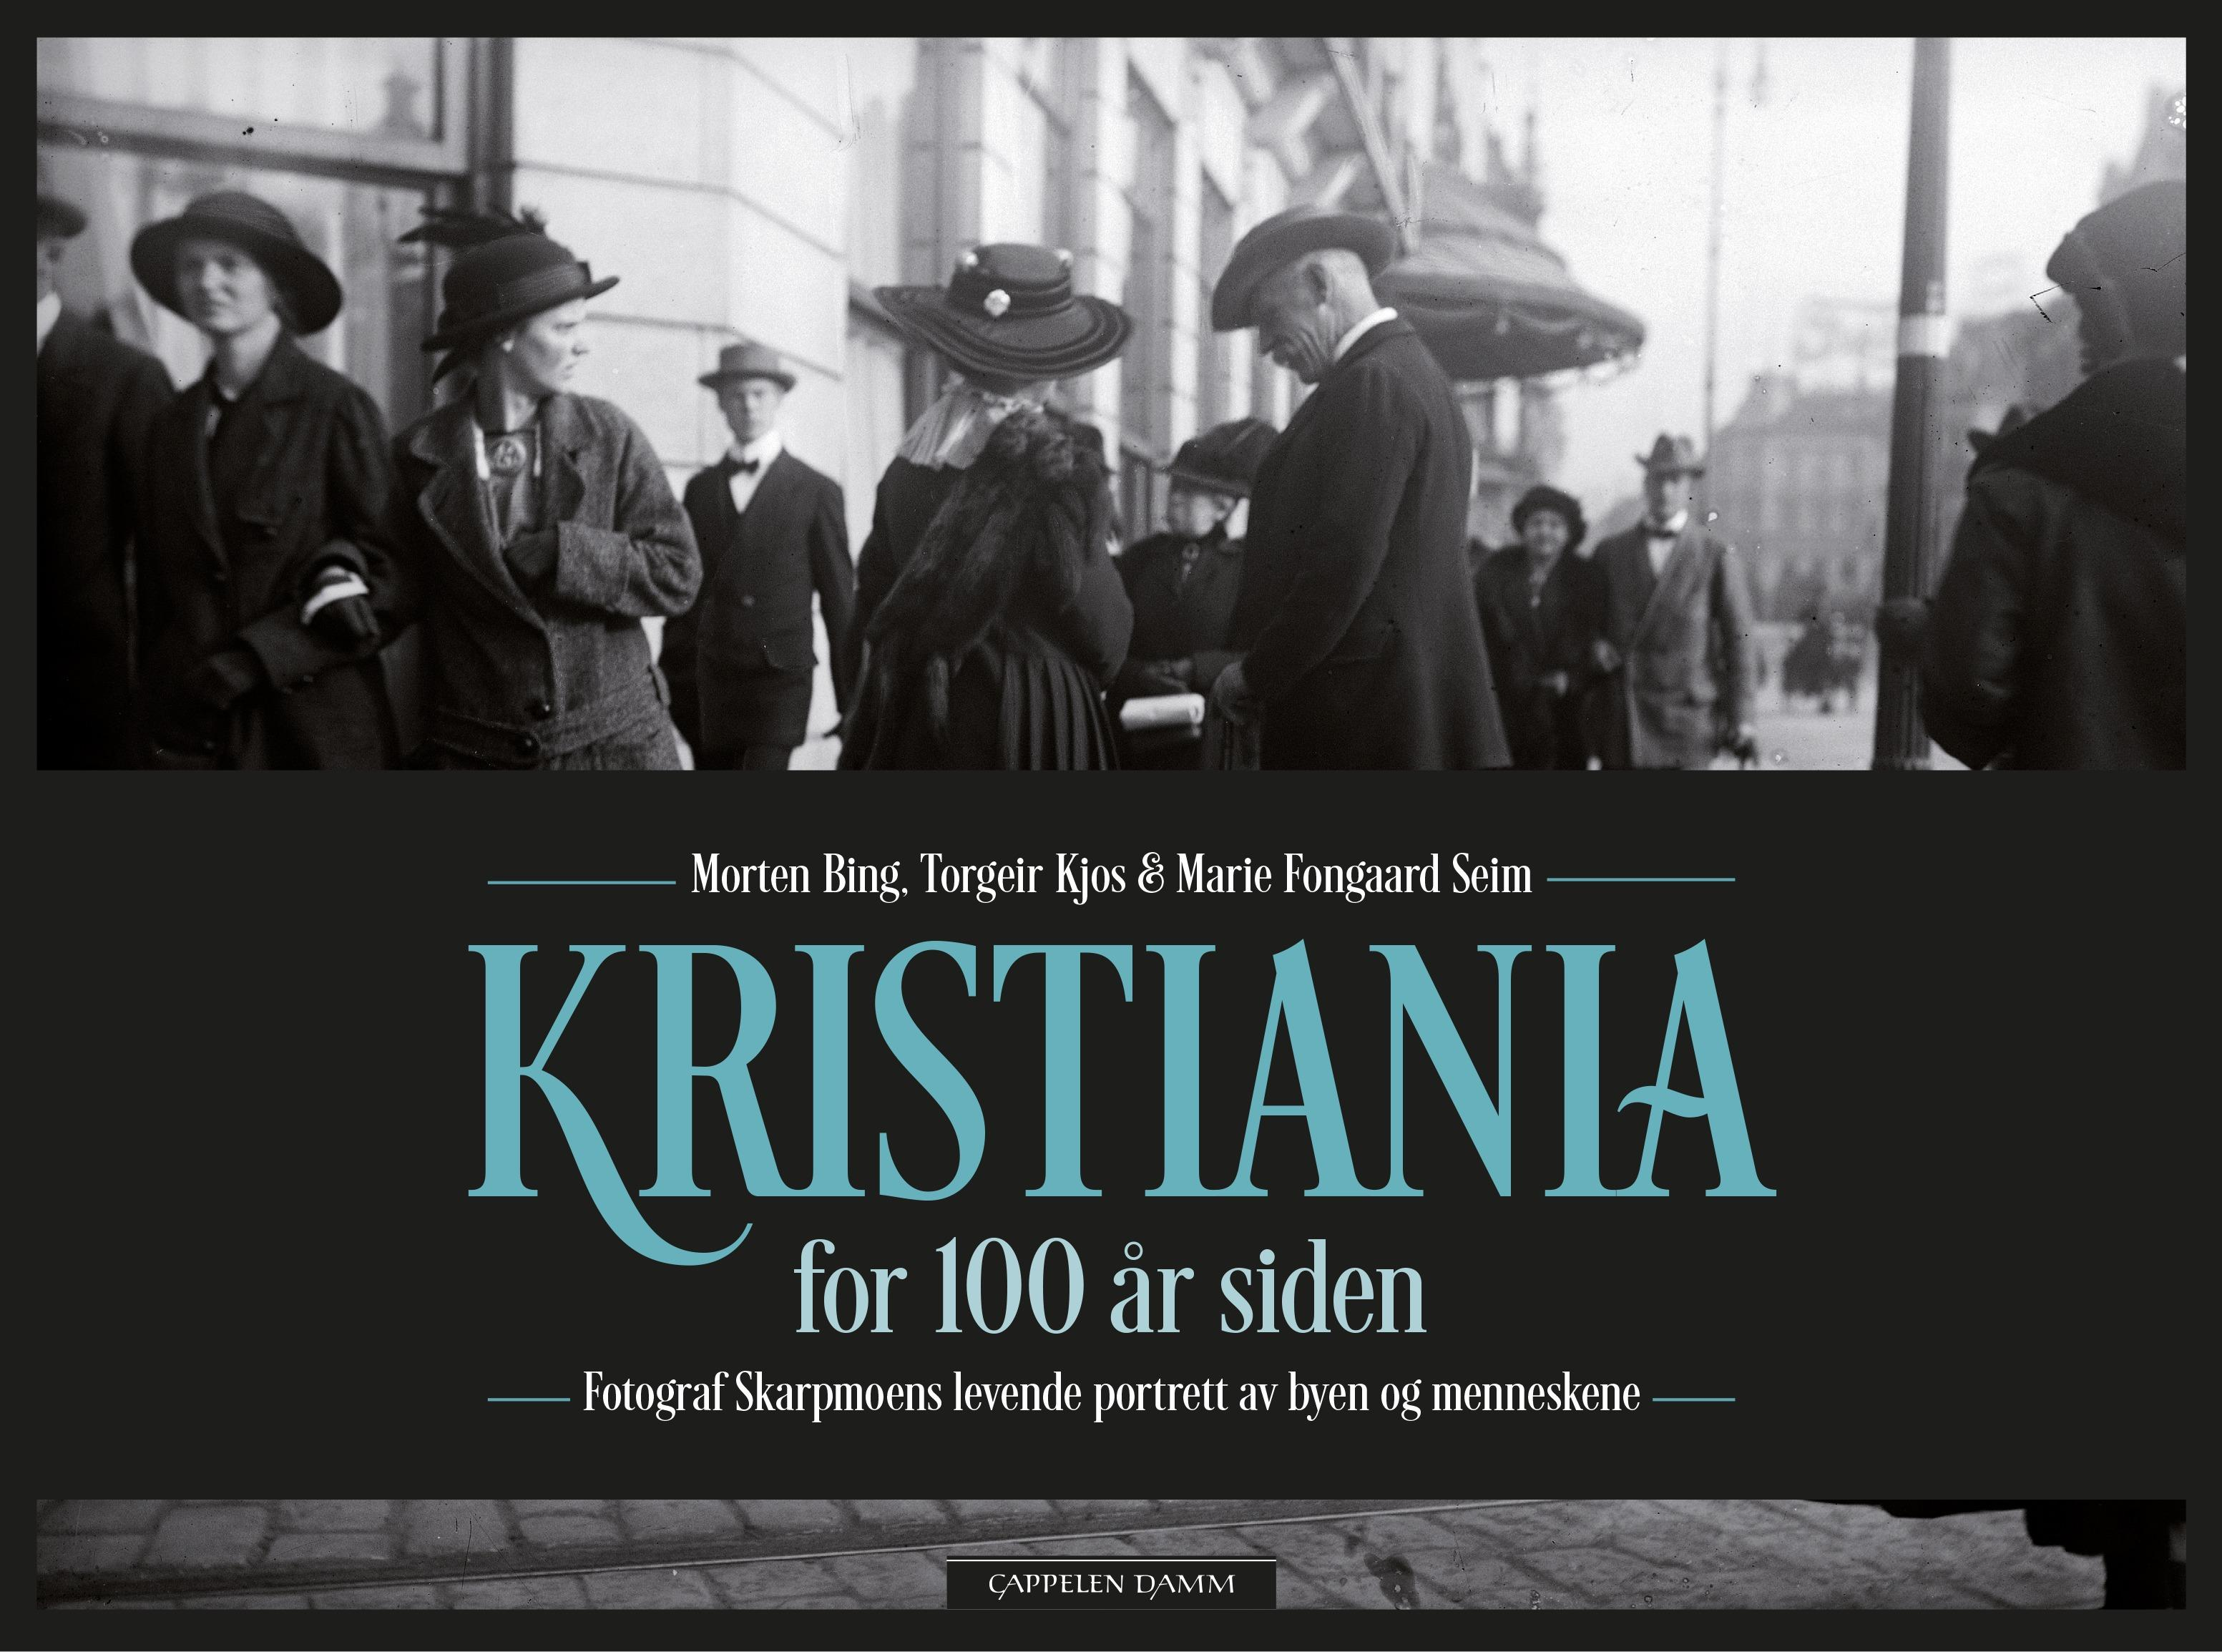 Kristiania for 100 år siden - Morten Bing